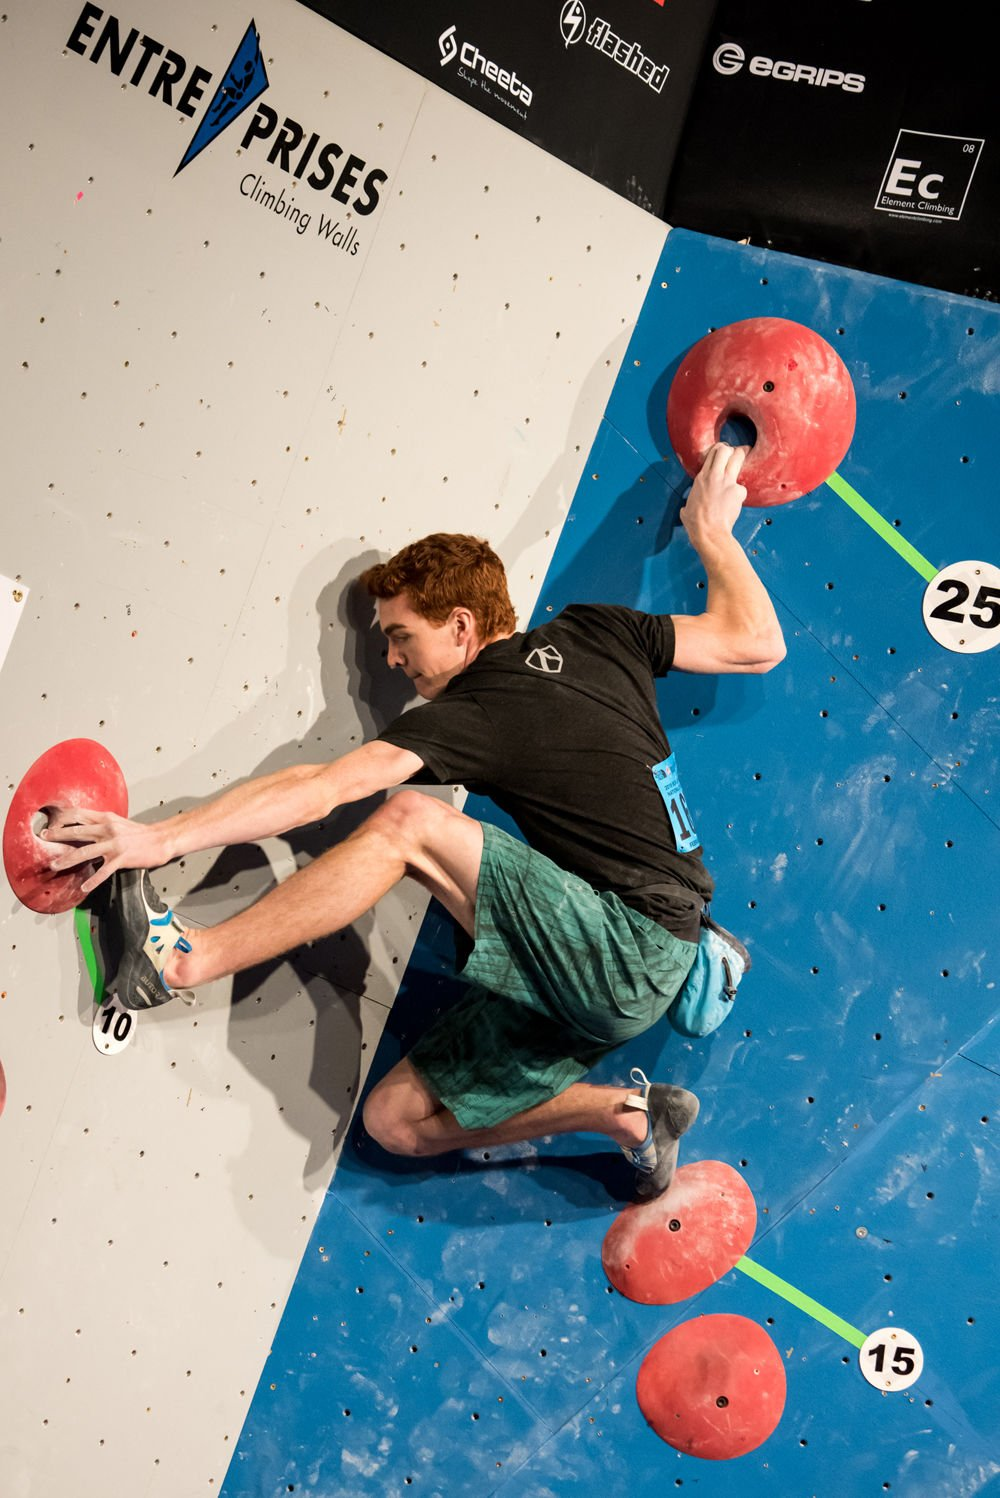 Ross Fulkerson USA Climbing Youth Bouldering Nationals